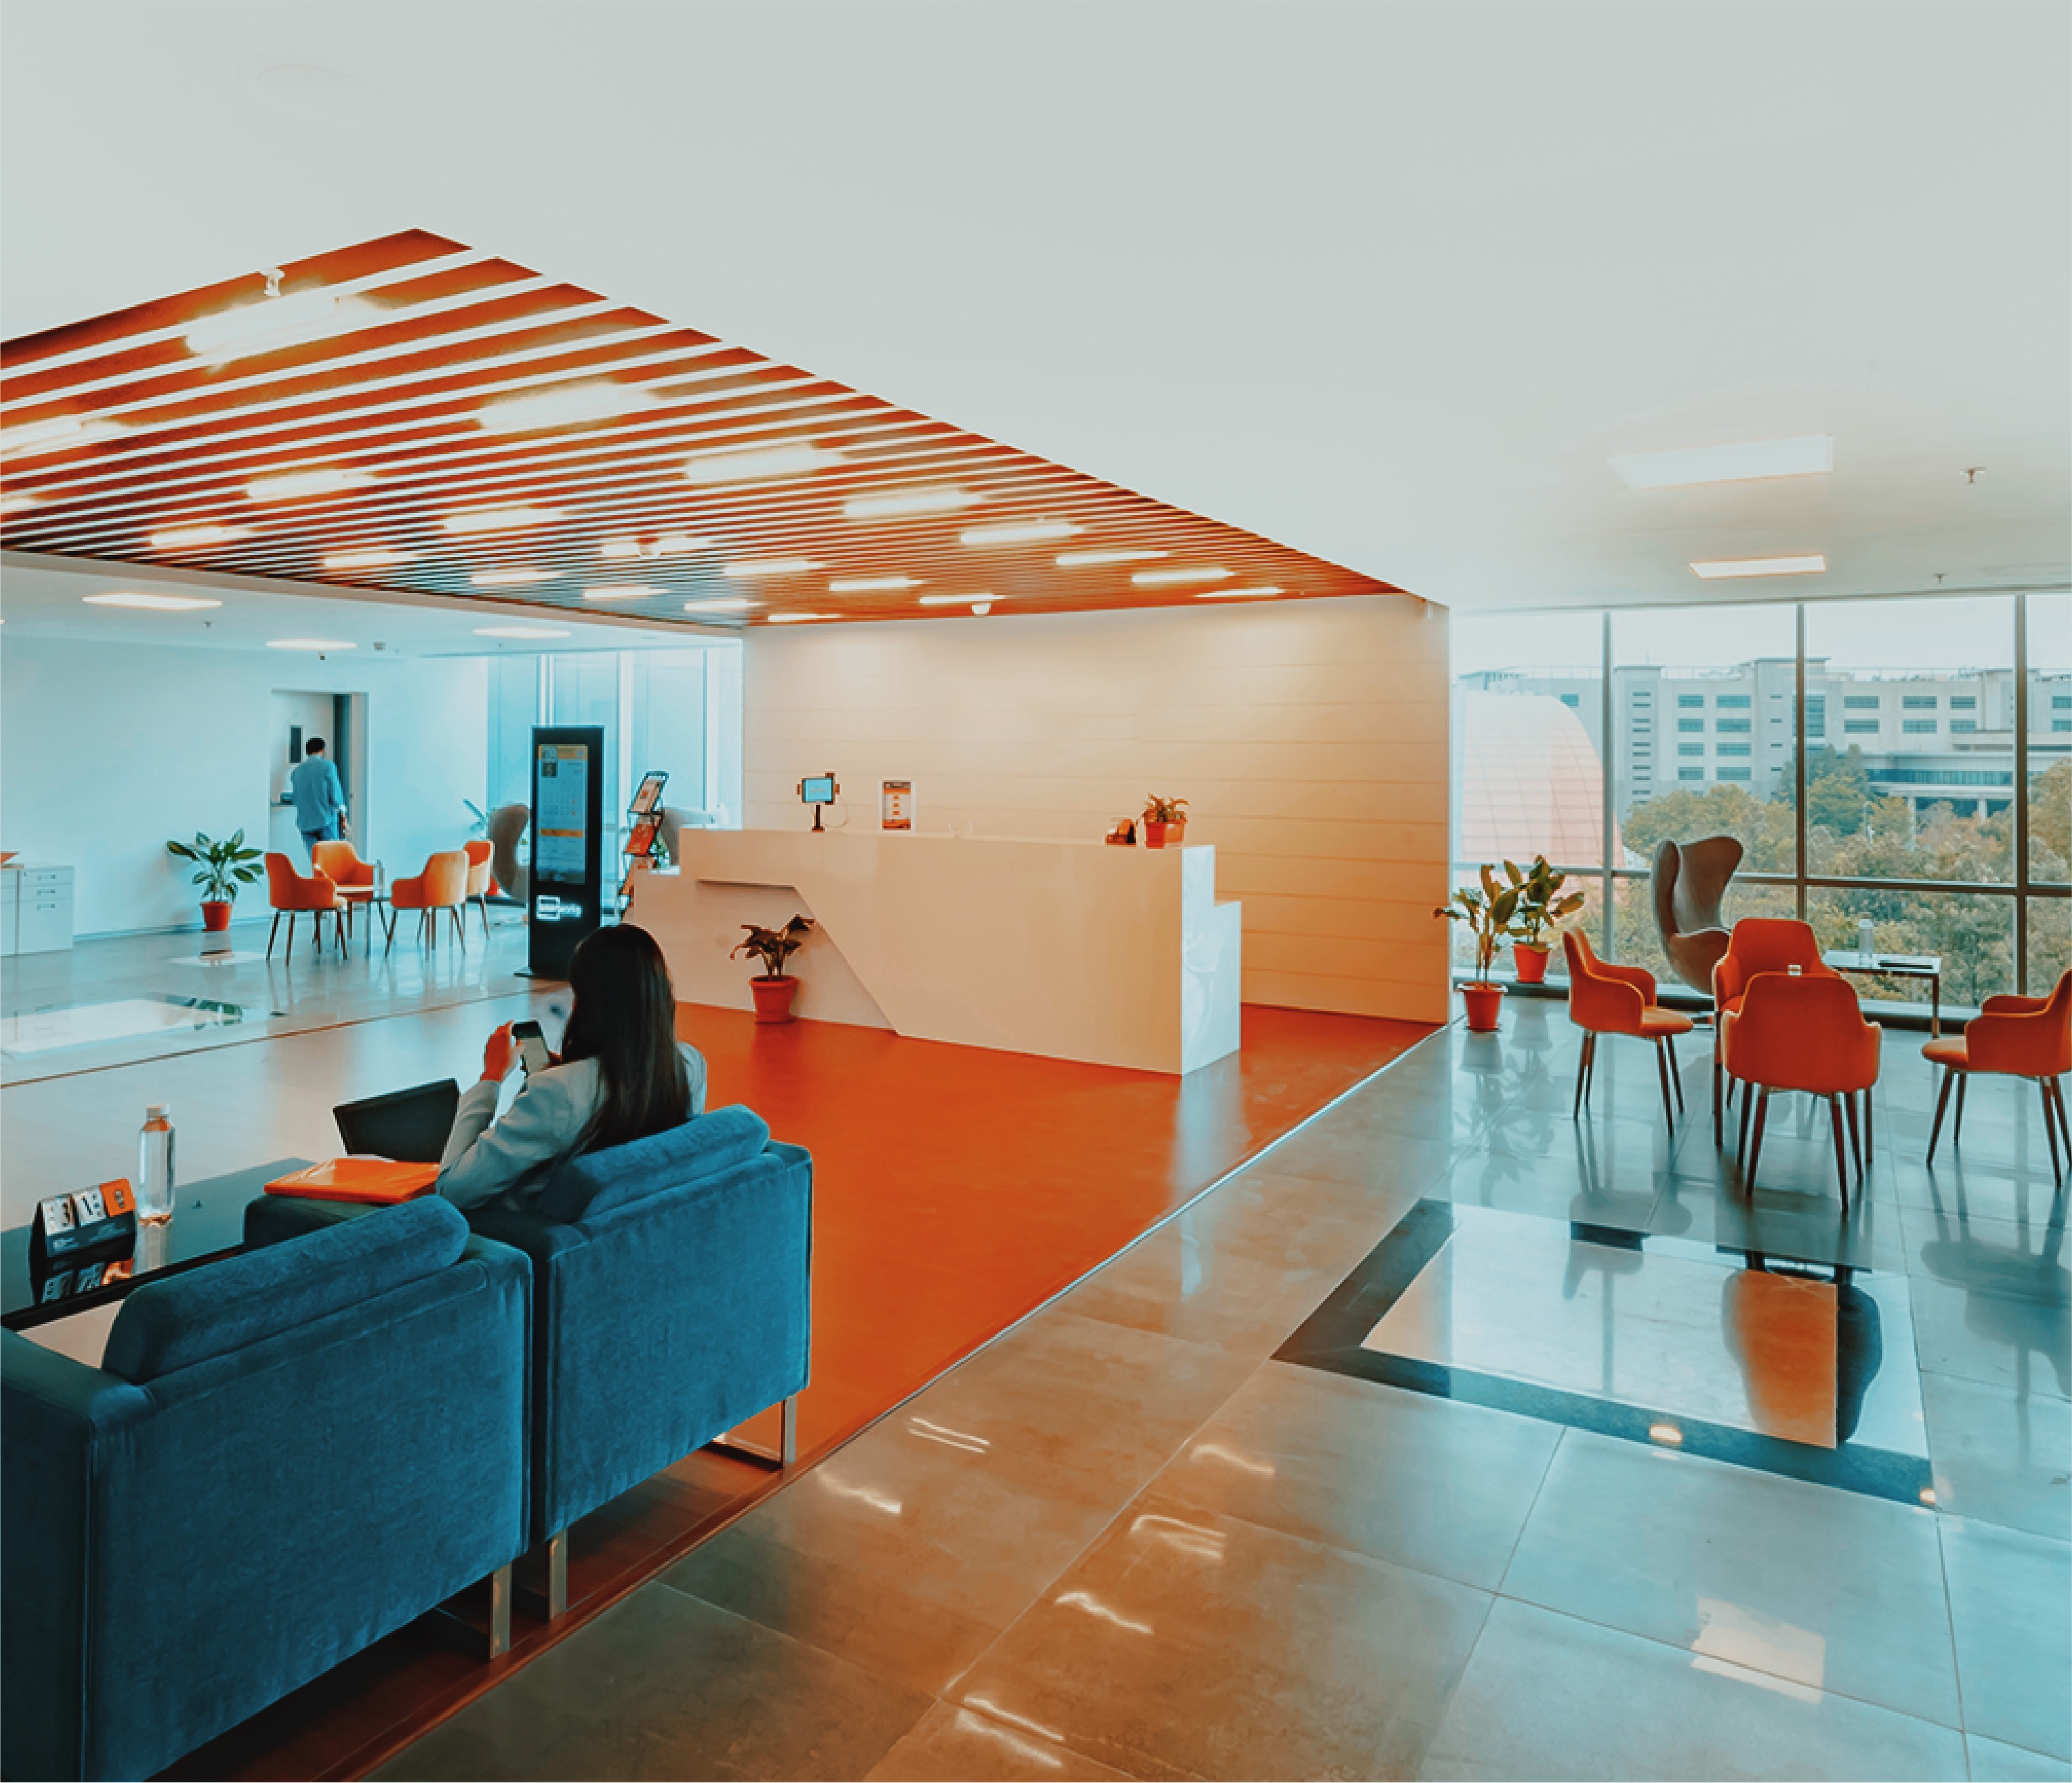 Colourful Futuristic Office Cubicles and Breakout Areas